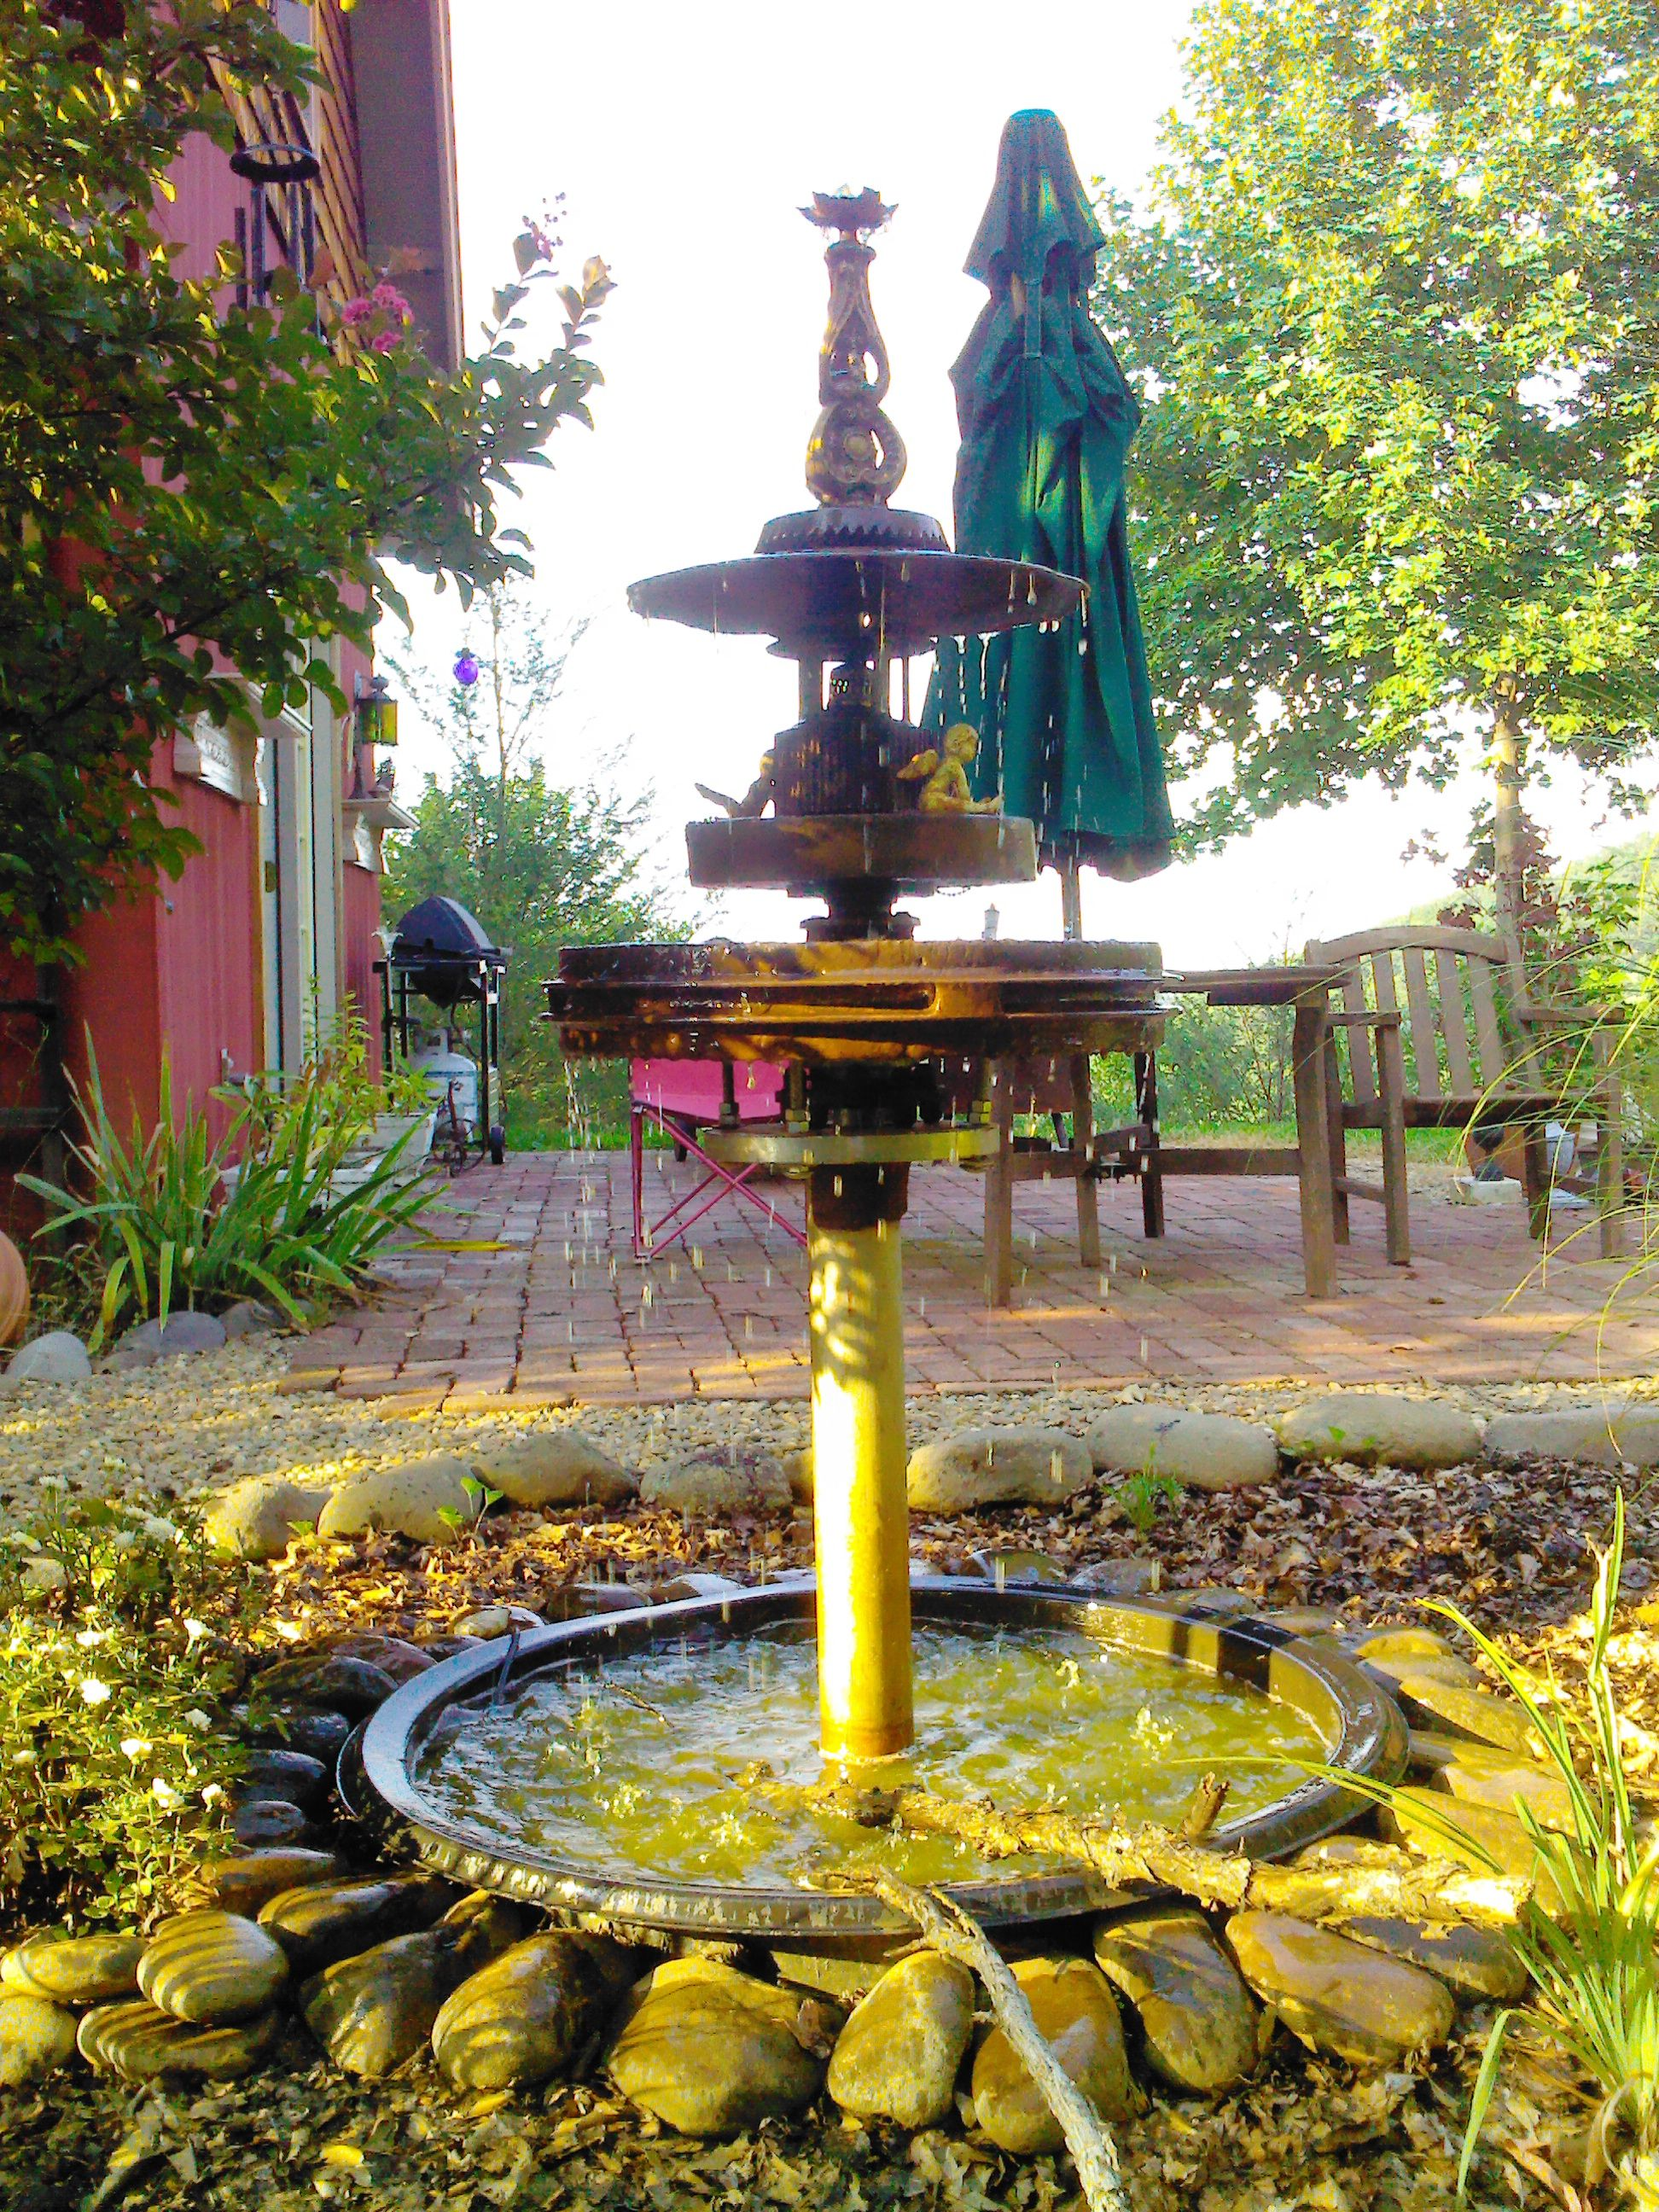 fountain i made from scrap metal  basin is a front tractor tire hub  next level up is a